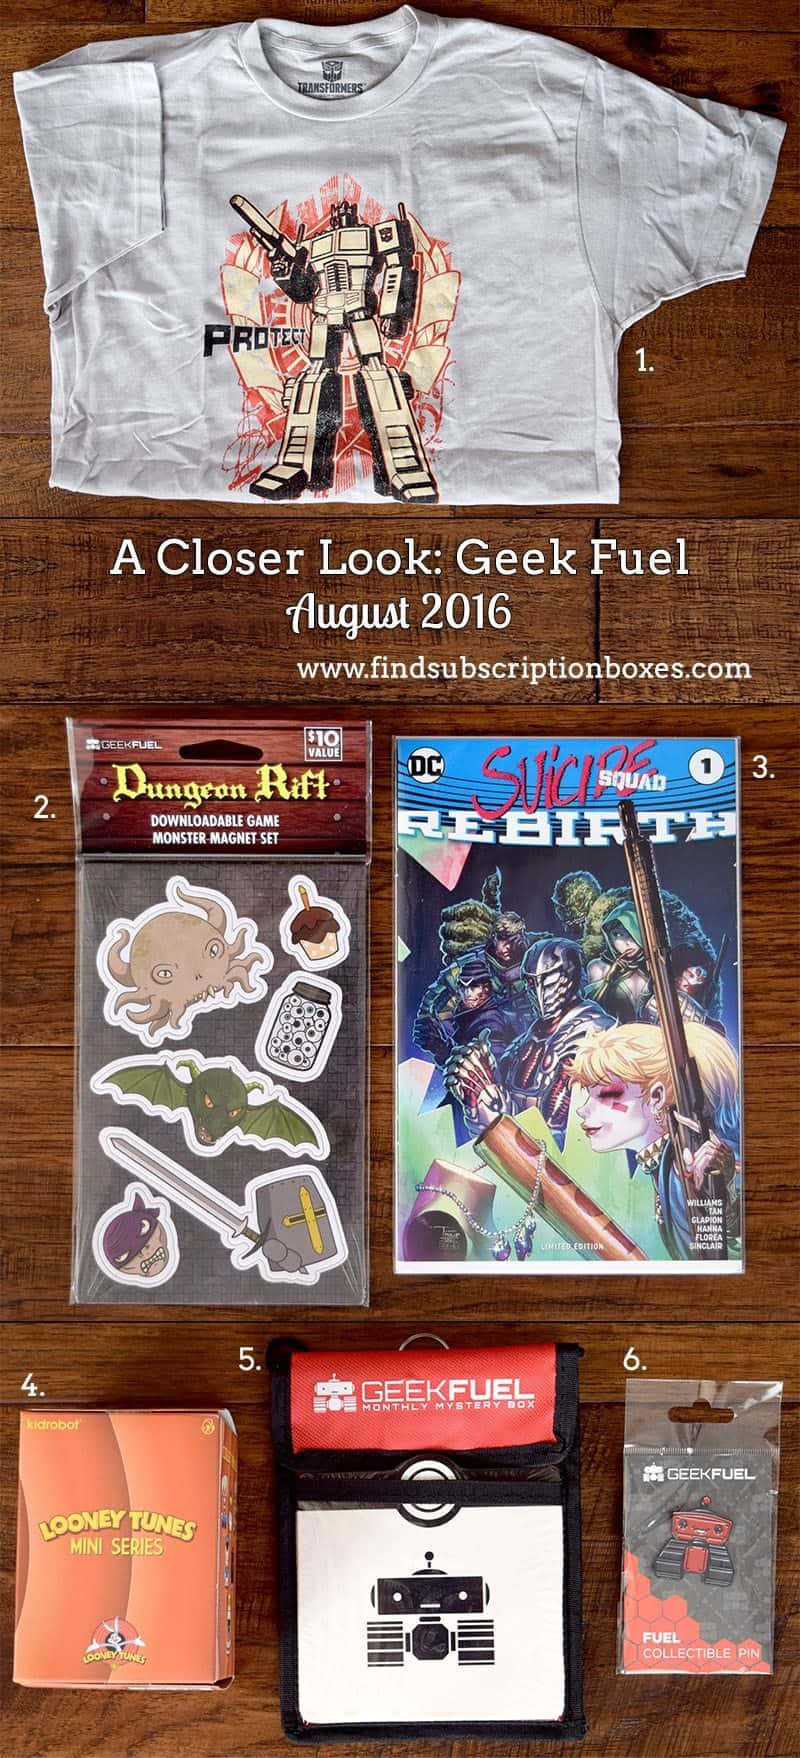 August 2016 Geek Fuel Box Review - Inside the Box